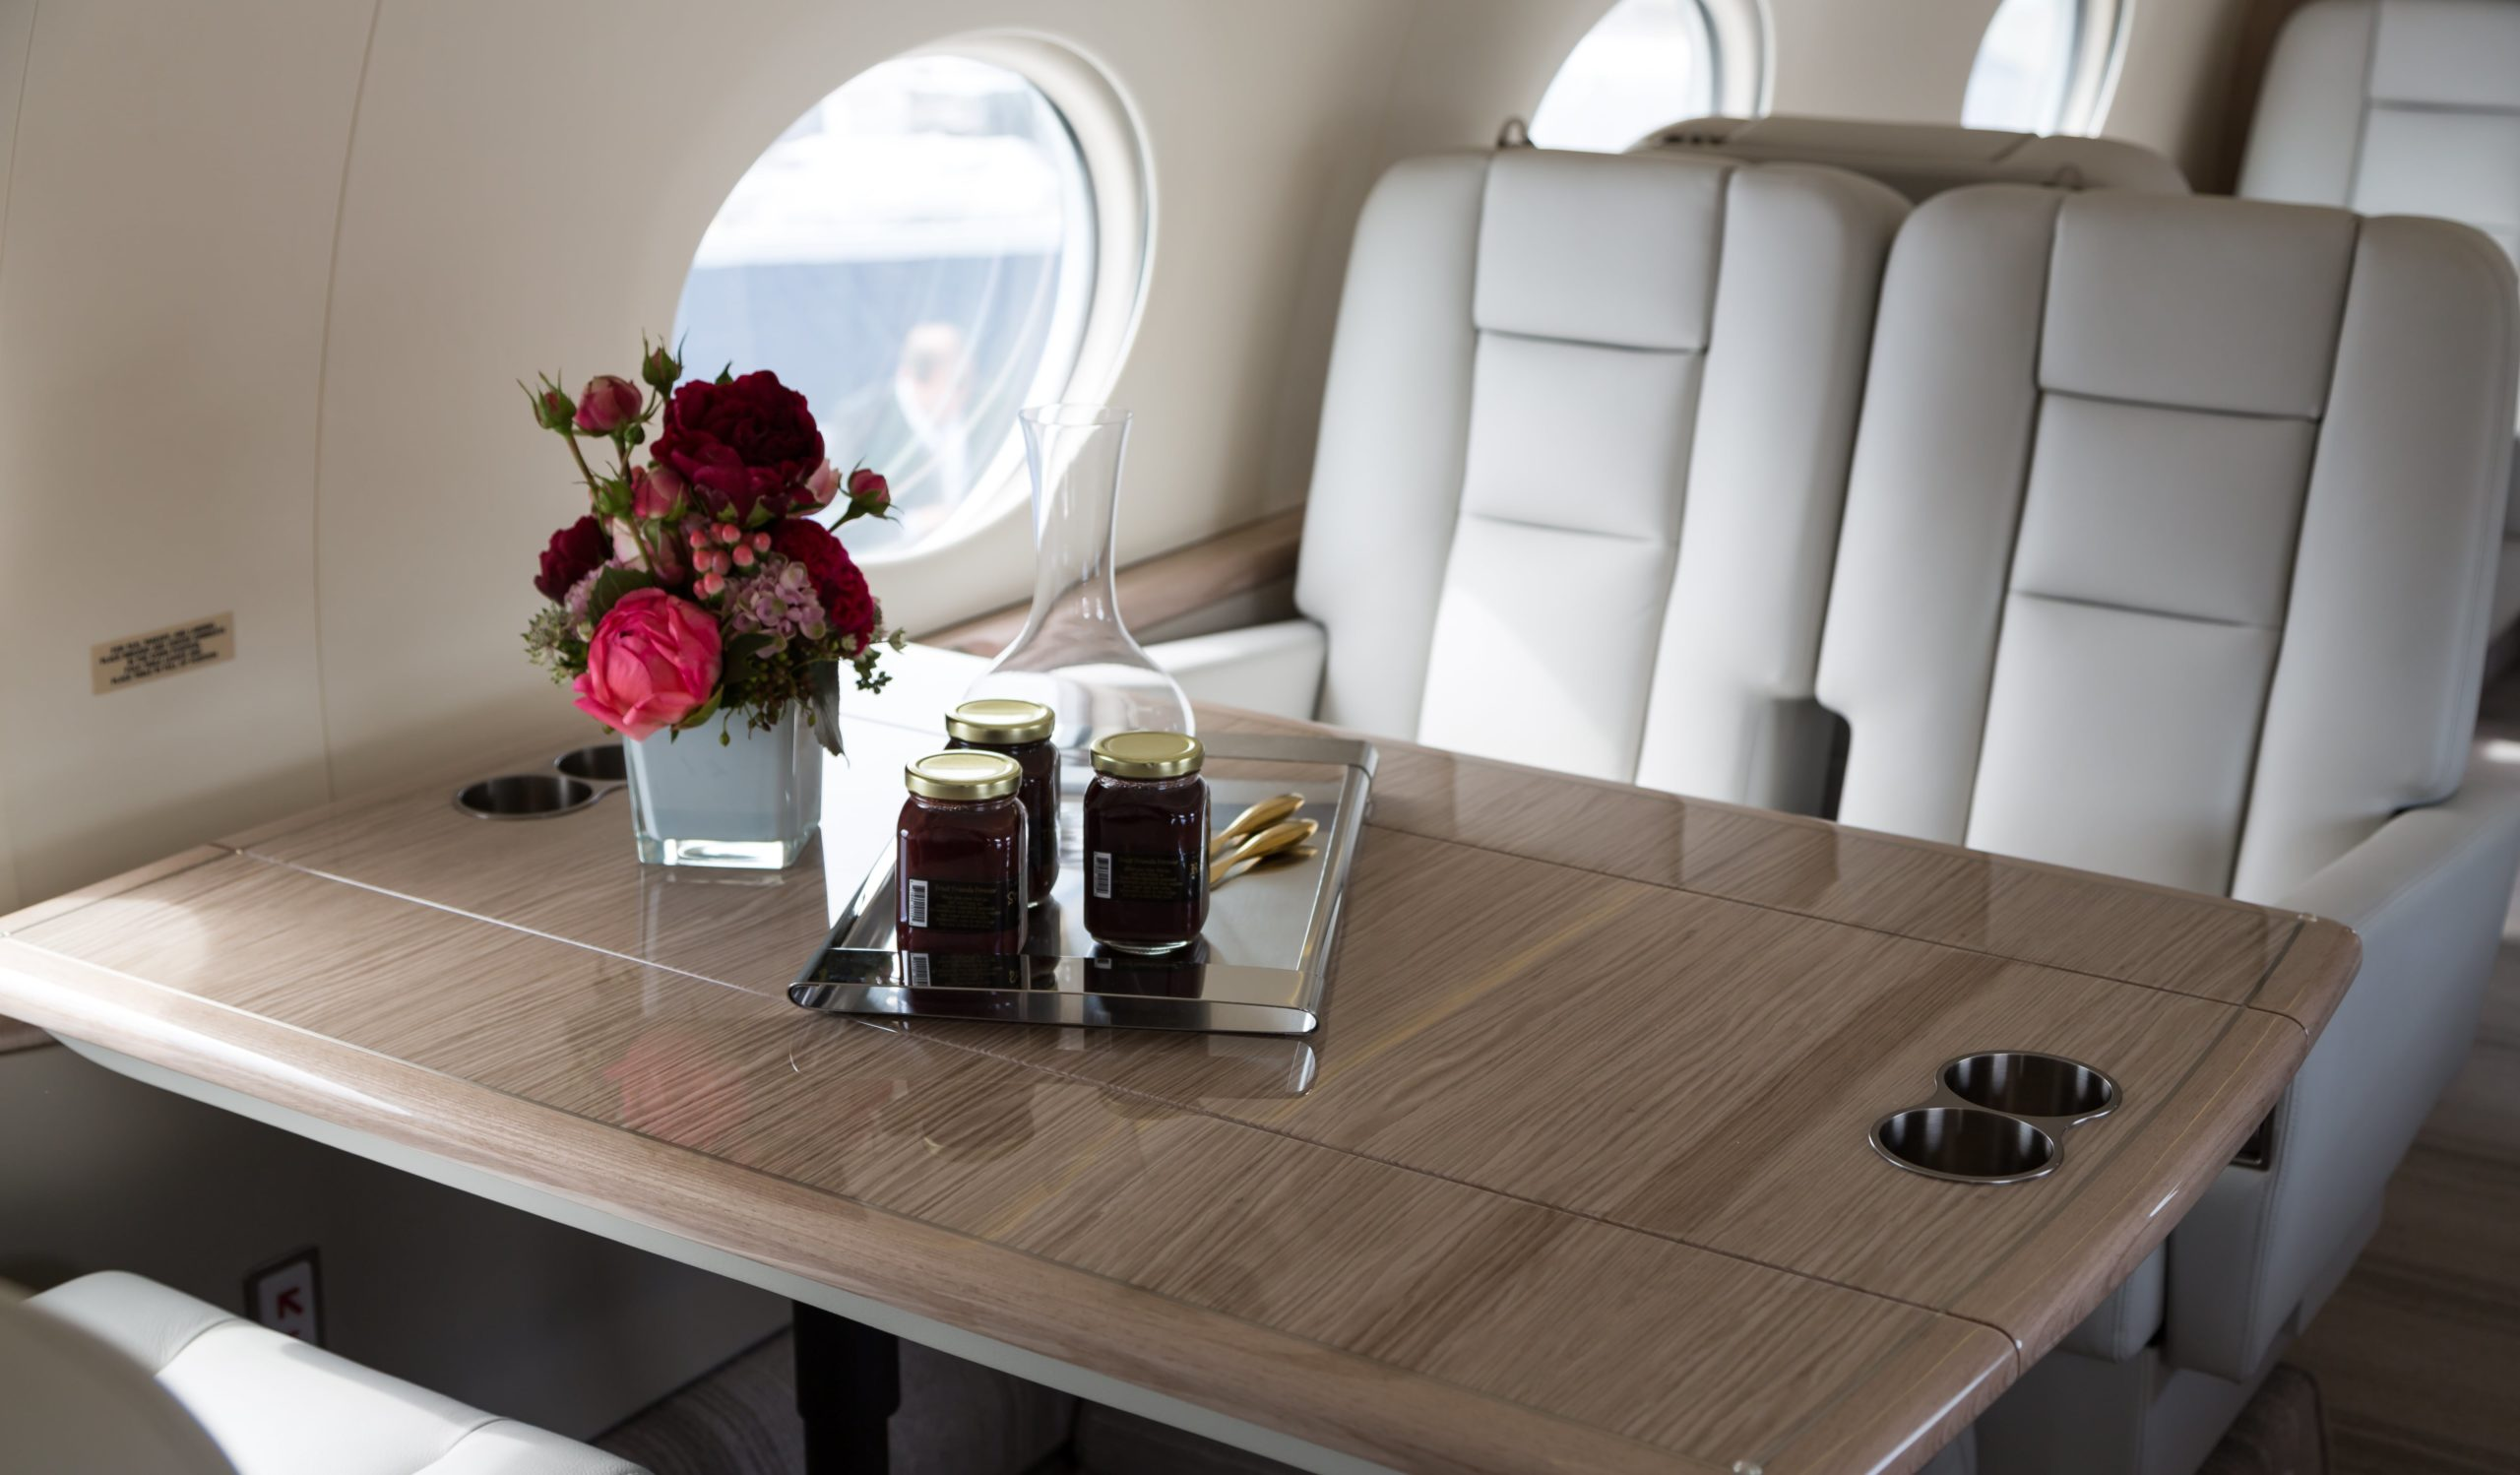 Luxurious interior of the Gulfstream G550